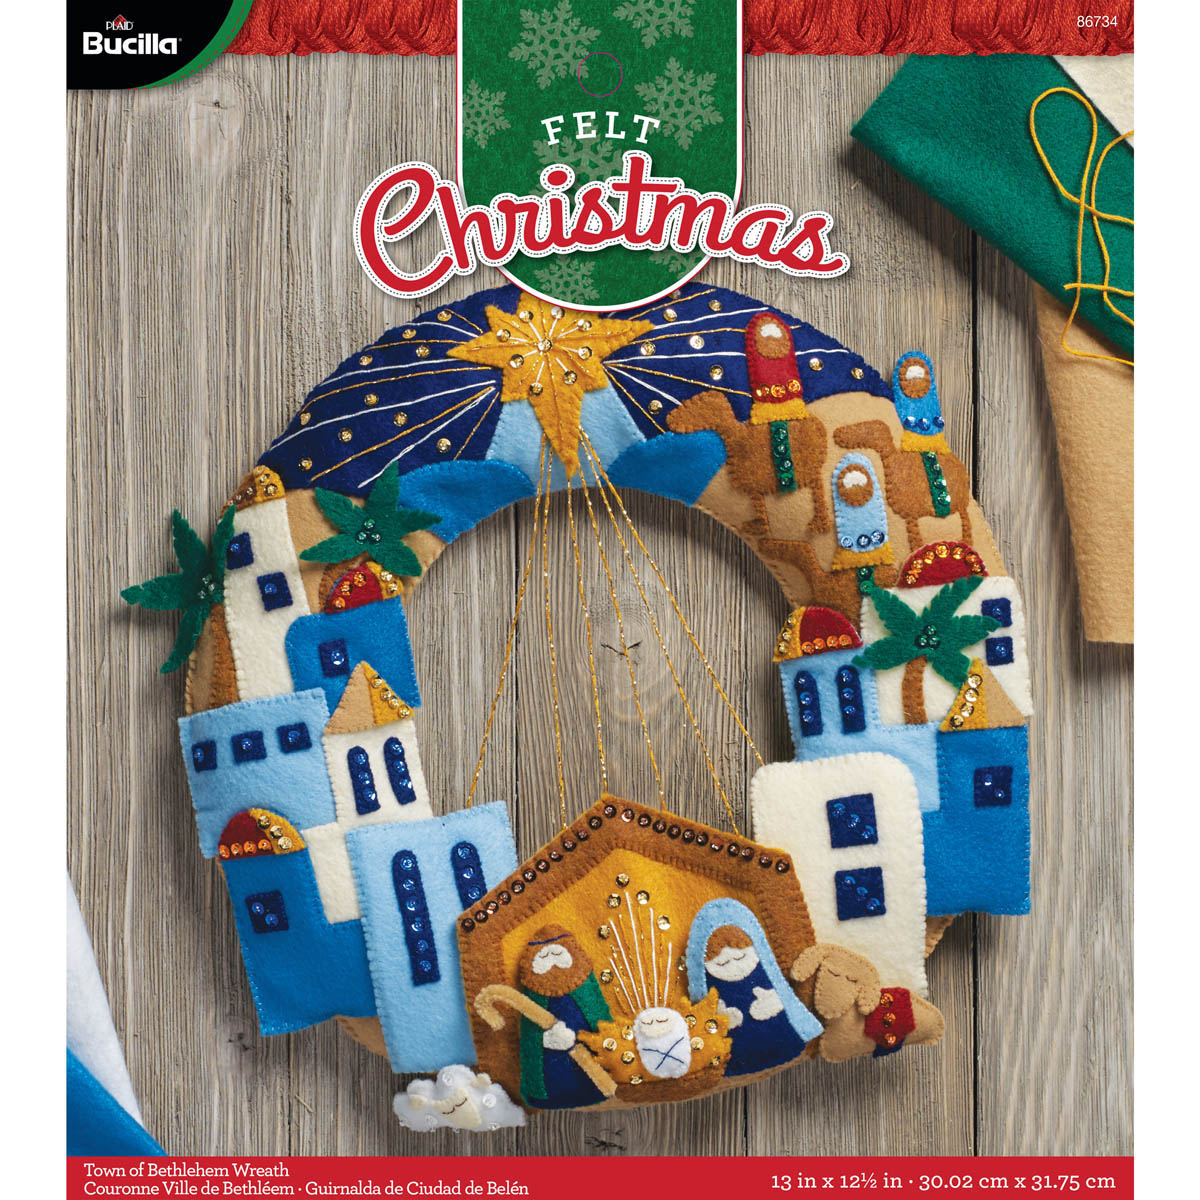 Bucilla ® Seasonal - Felt - Home Decor - Town of Bethlehem Wreath - 86734